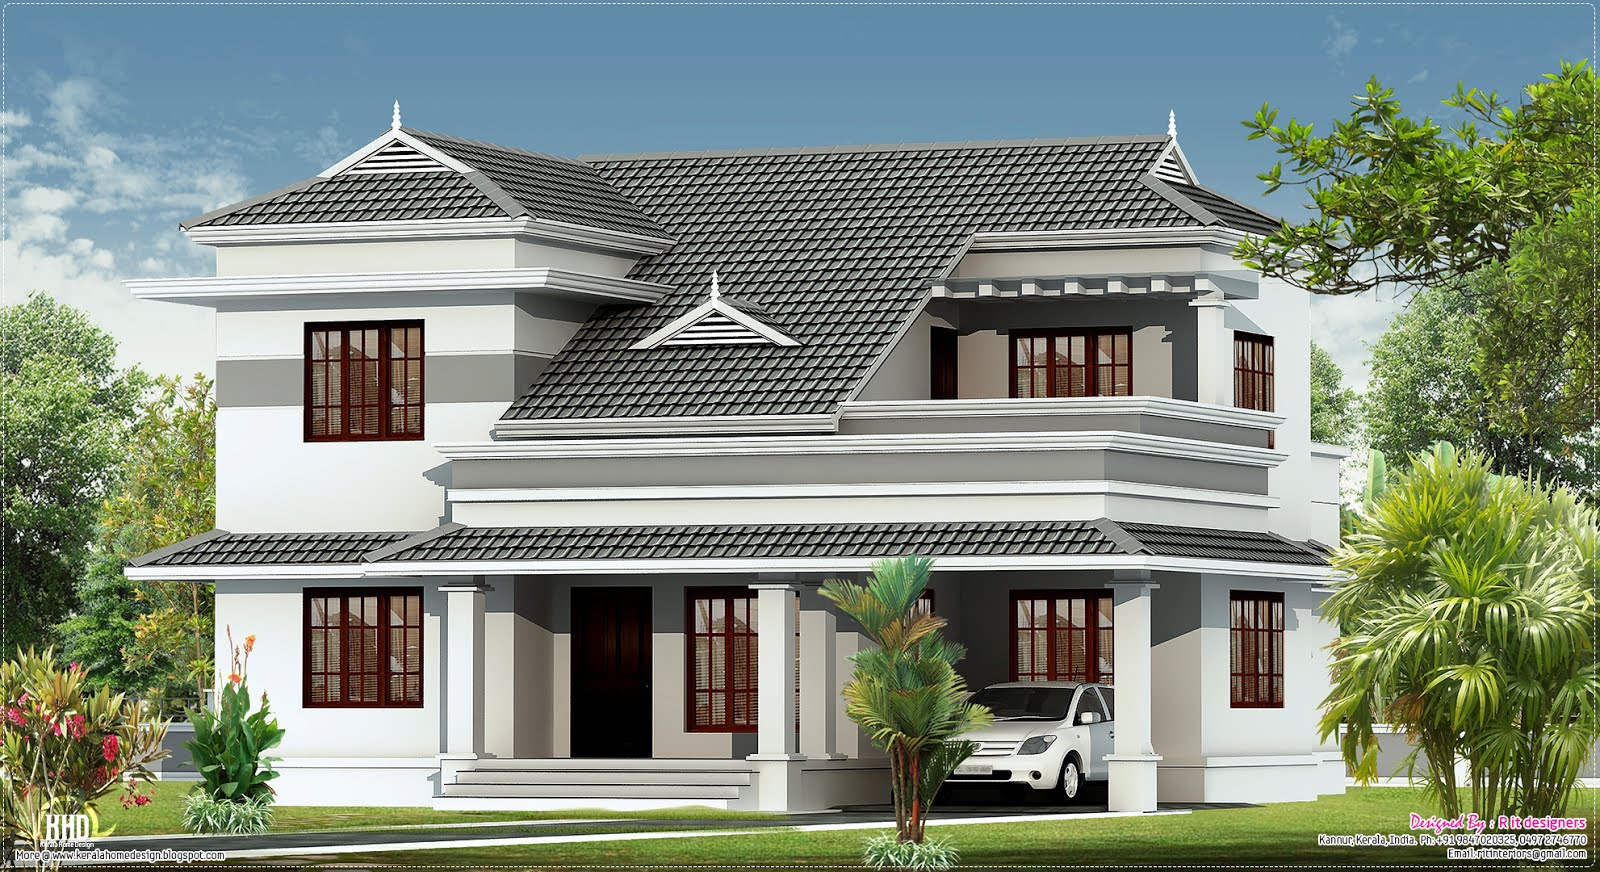 New villa design in 2250 kerala home design and for New homes designs